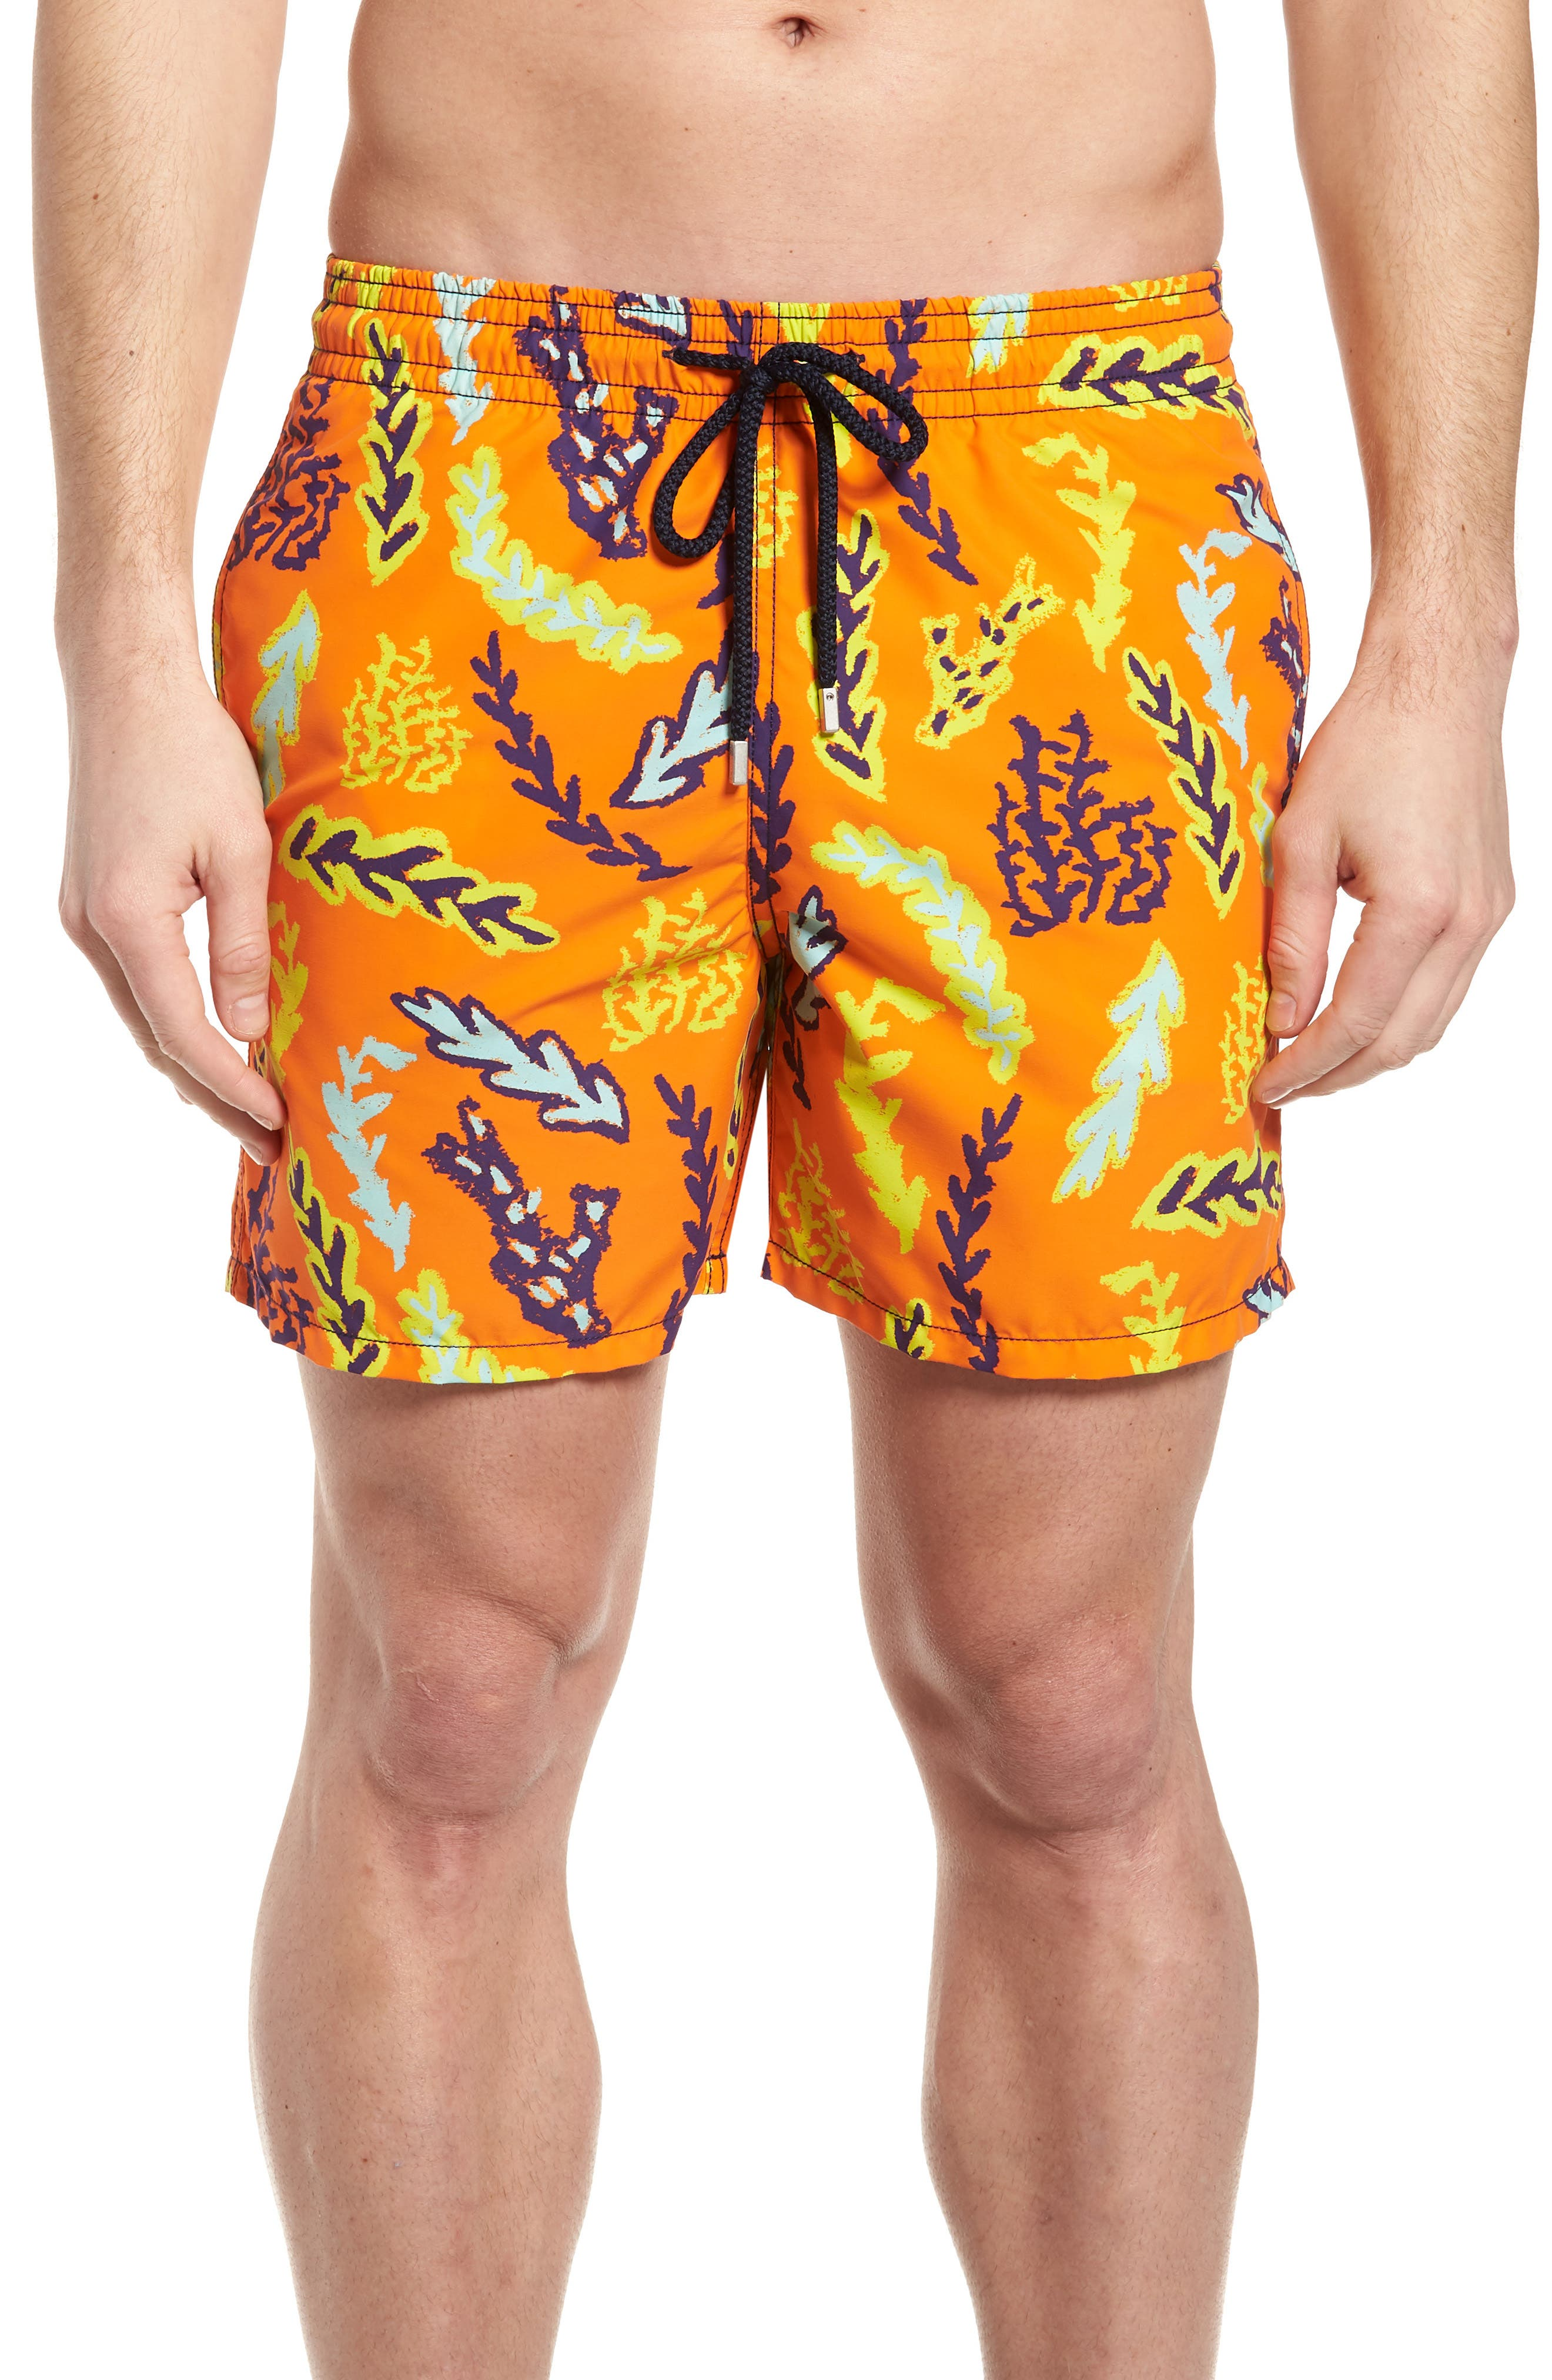 Solar Seaweed Print Swim Trunks,                             Main thumbnail 1, color,                             812